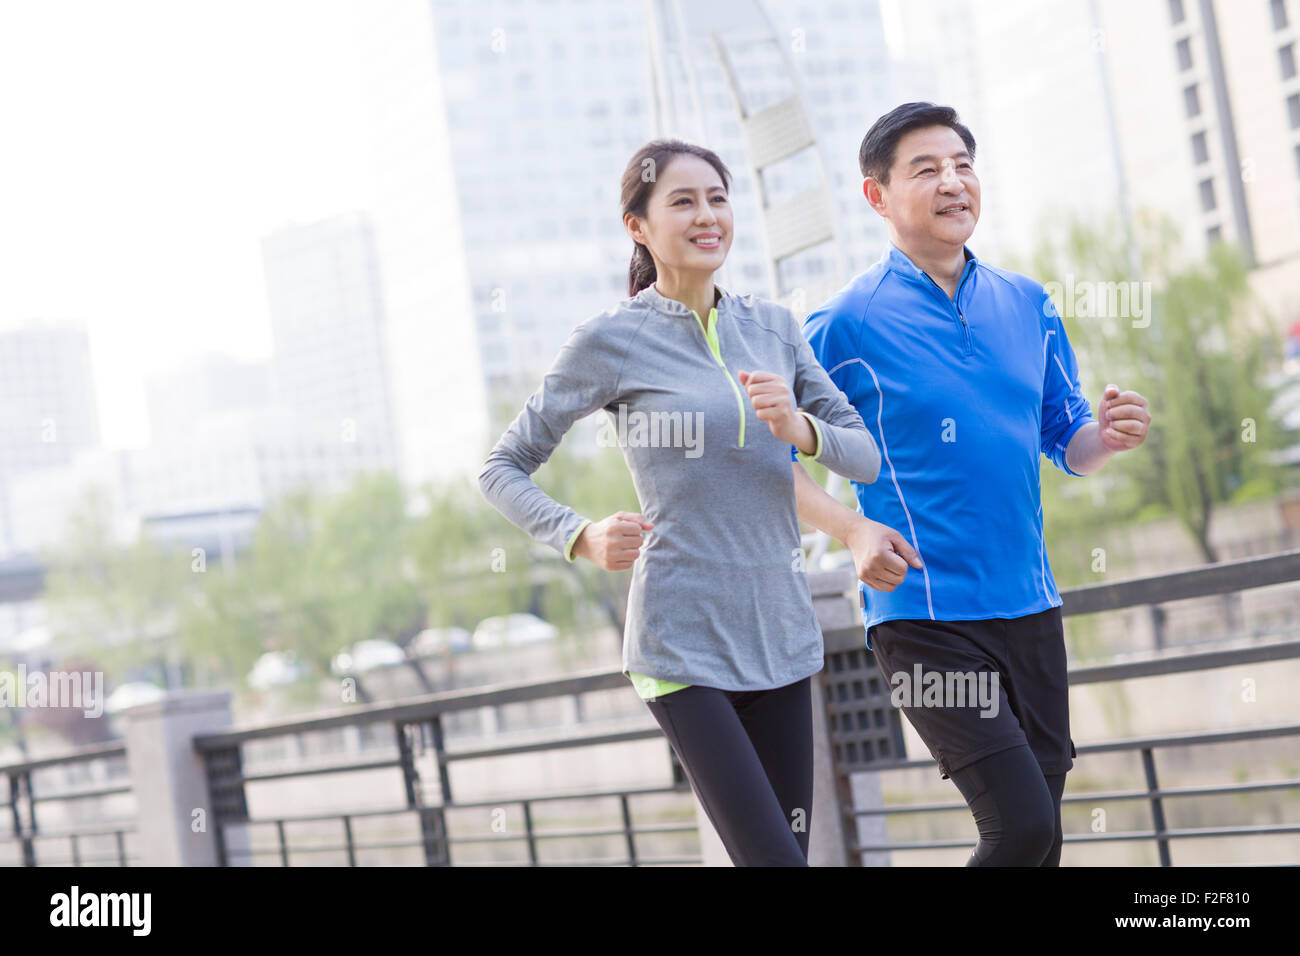 Happy mature couple running in park - Stock Image